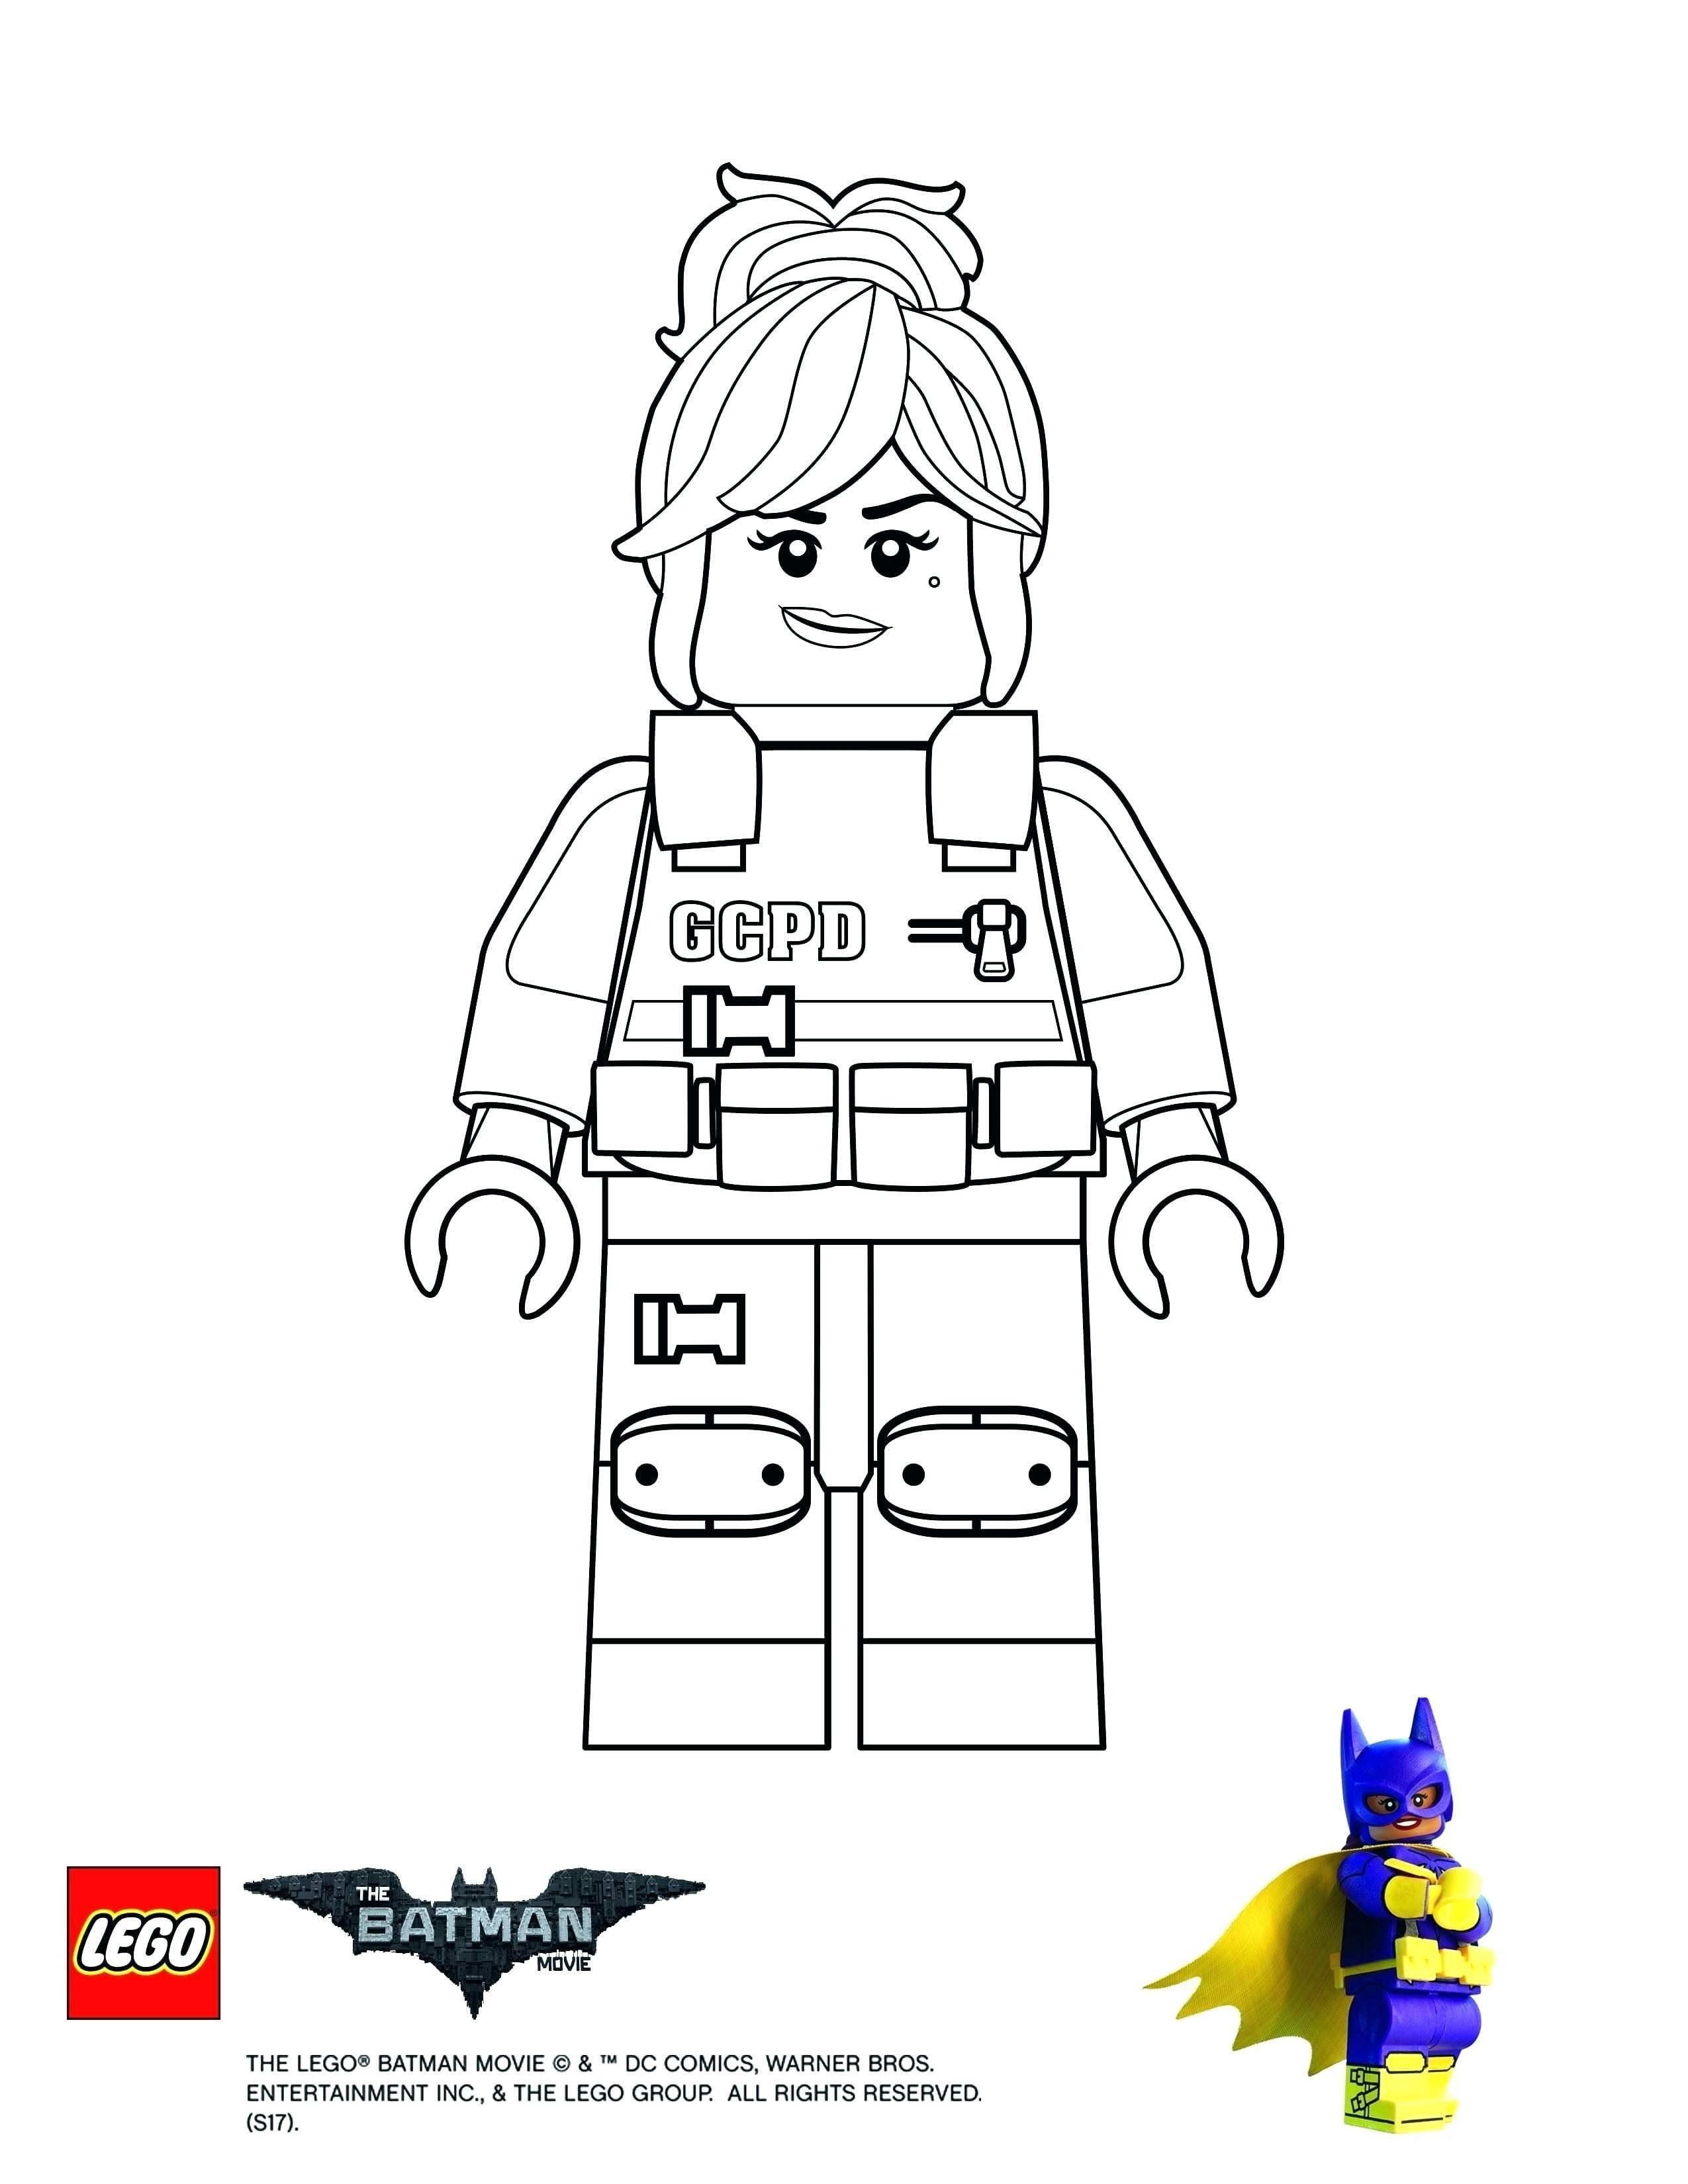 Rick And Morty Coloring Book Best Of Dc Shoes Coloring Pages Dc Burlingtonjs Org Lego Coloring Pages Lego Coloring Batman Coloring Pages